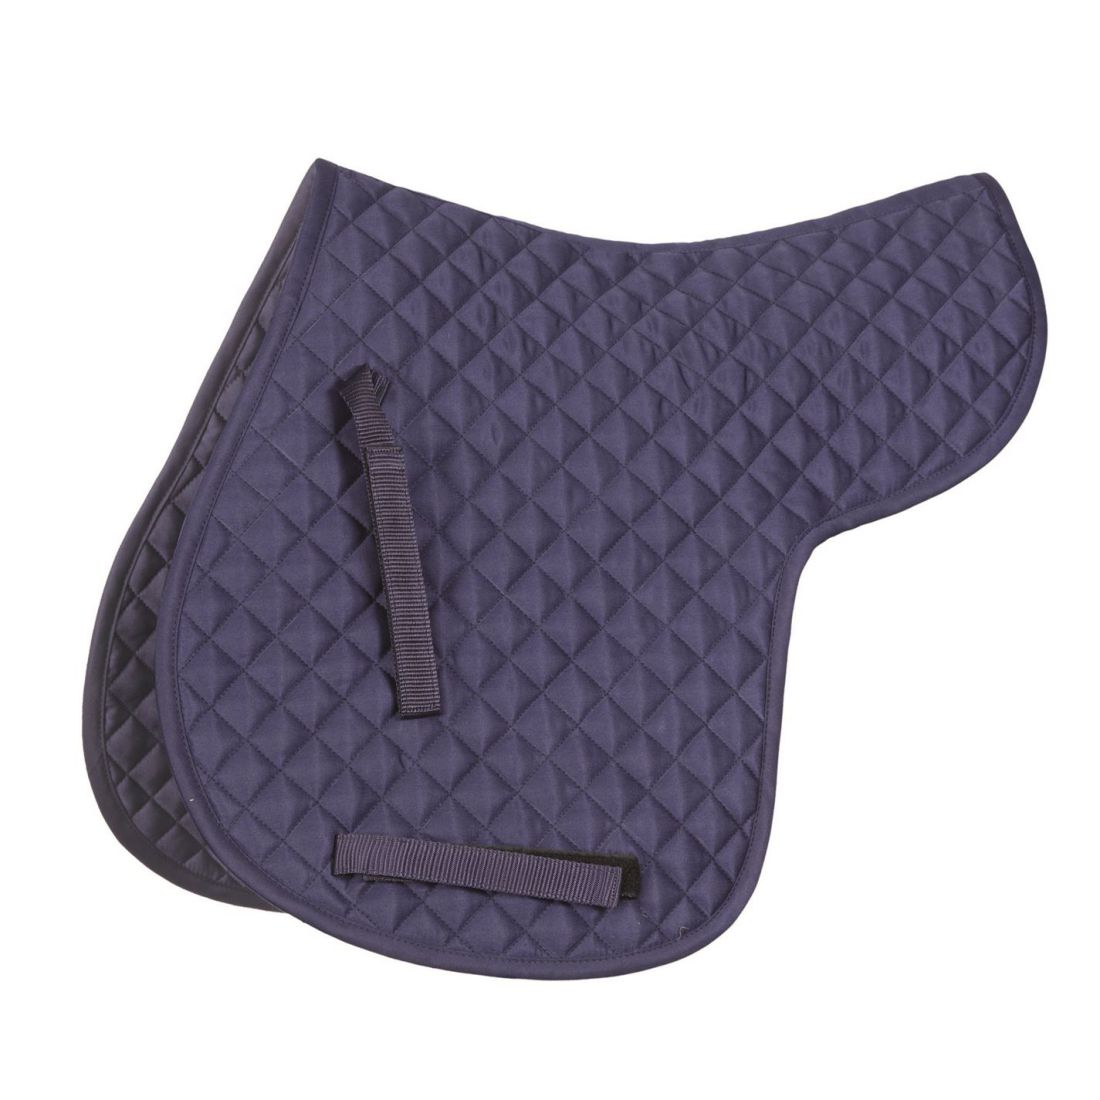 Shires Wessex Numnah Saddle Pad Quilted Design Accessories Robinsons New